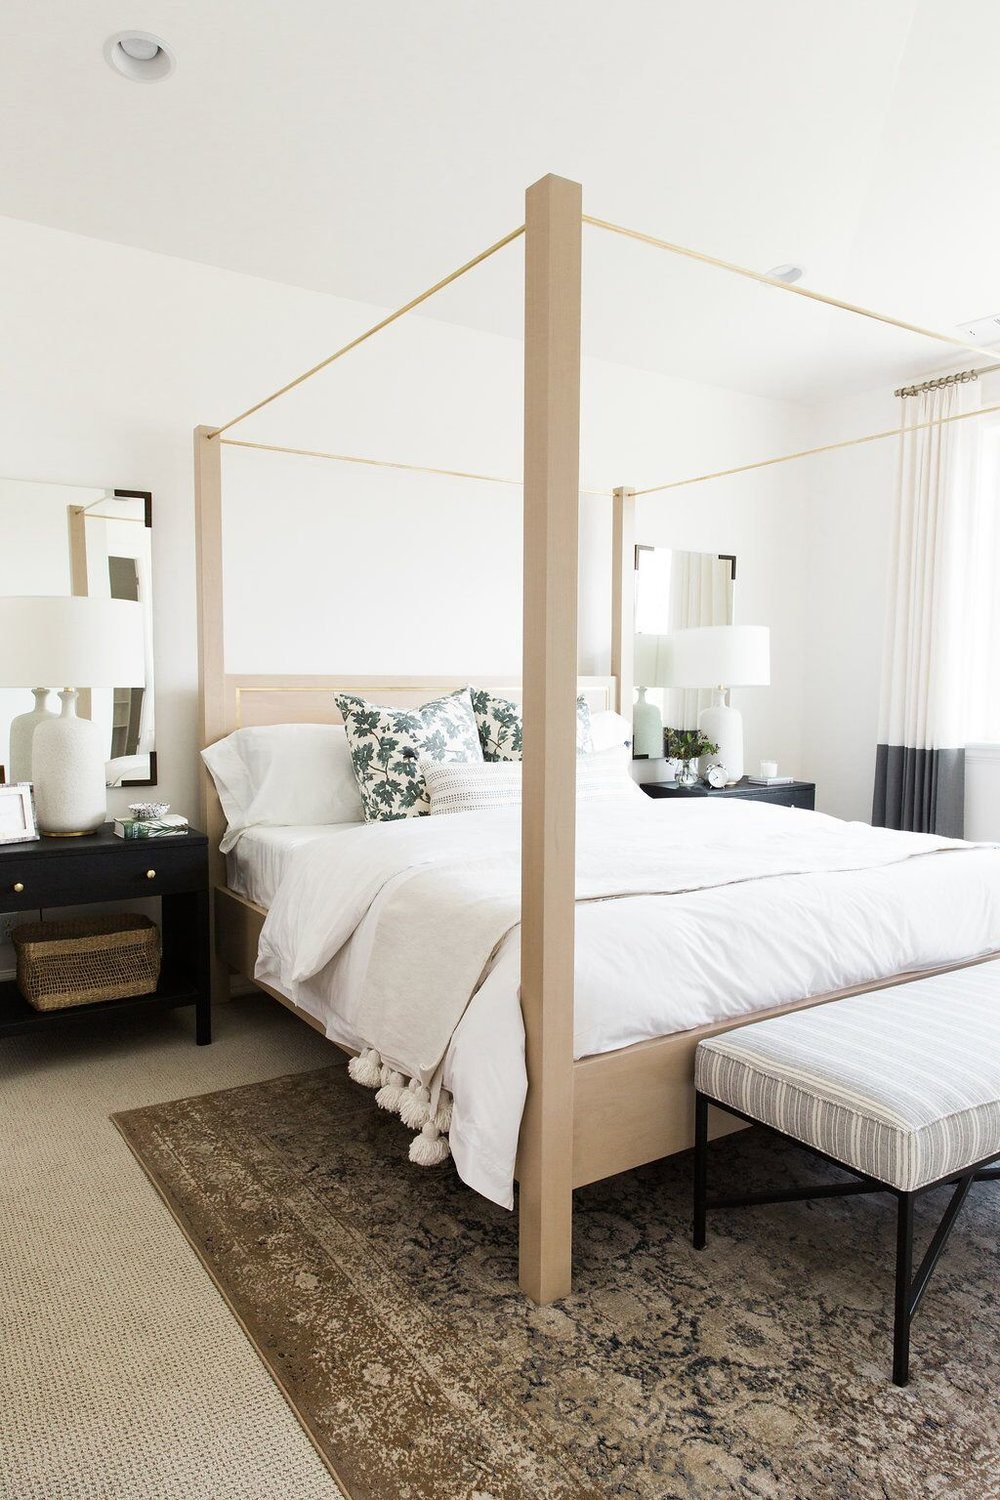 A canopy bed anchors the space adds height and gives a room a grandeur focal point to love. & Trends We love: Canopy Beds u2014 STUDIO MCGEE